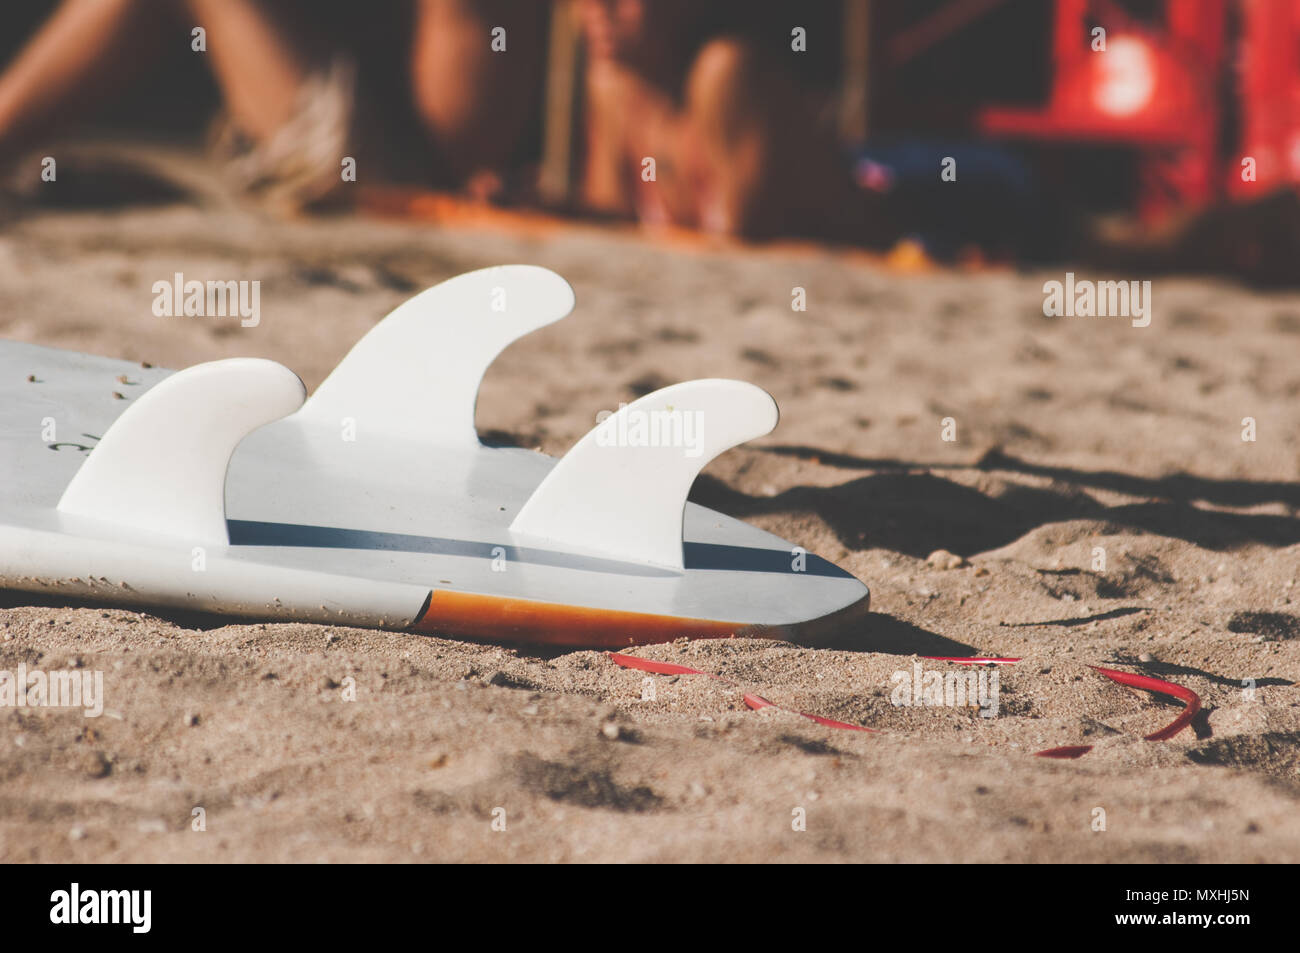 Tail of a surfboard on the sand with three fin - Stock Image